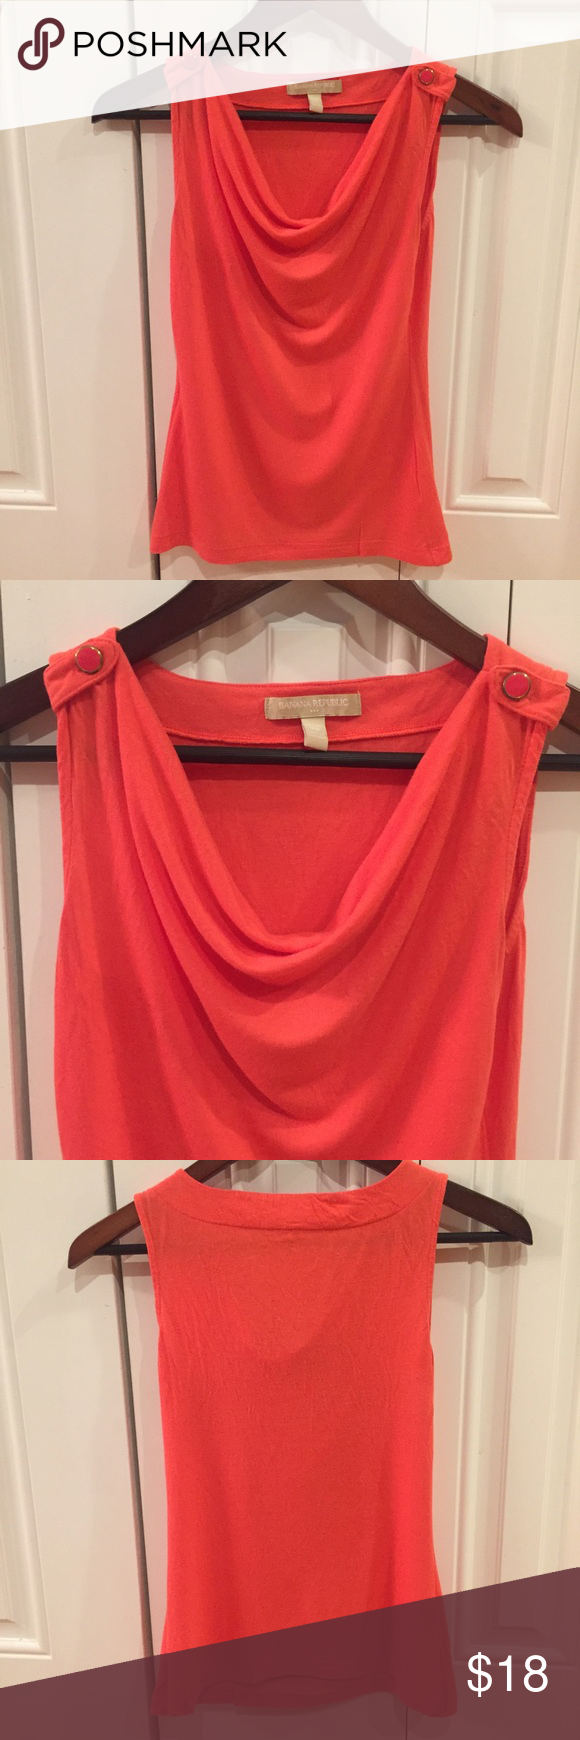 Coral Sleeveless Top Vibrant coral drape-neck top from Banana Republic. Pretty button detail on shoulders. Size XS Petite. Banana Republic Tops